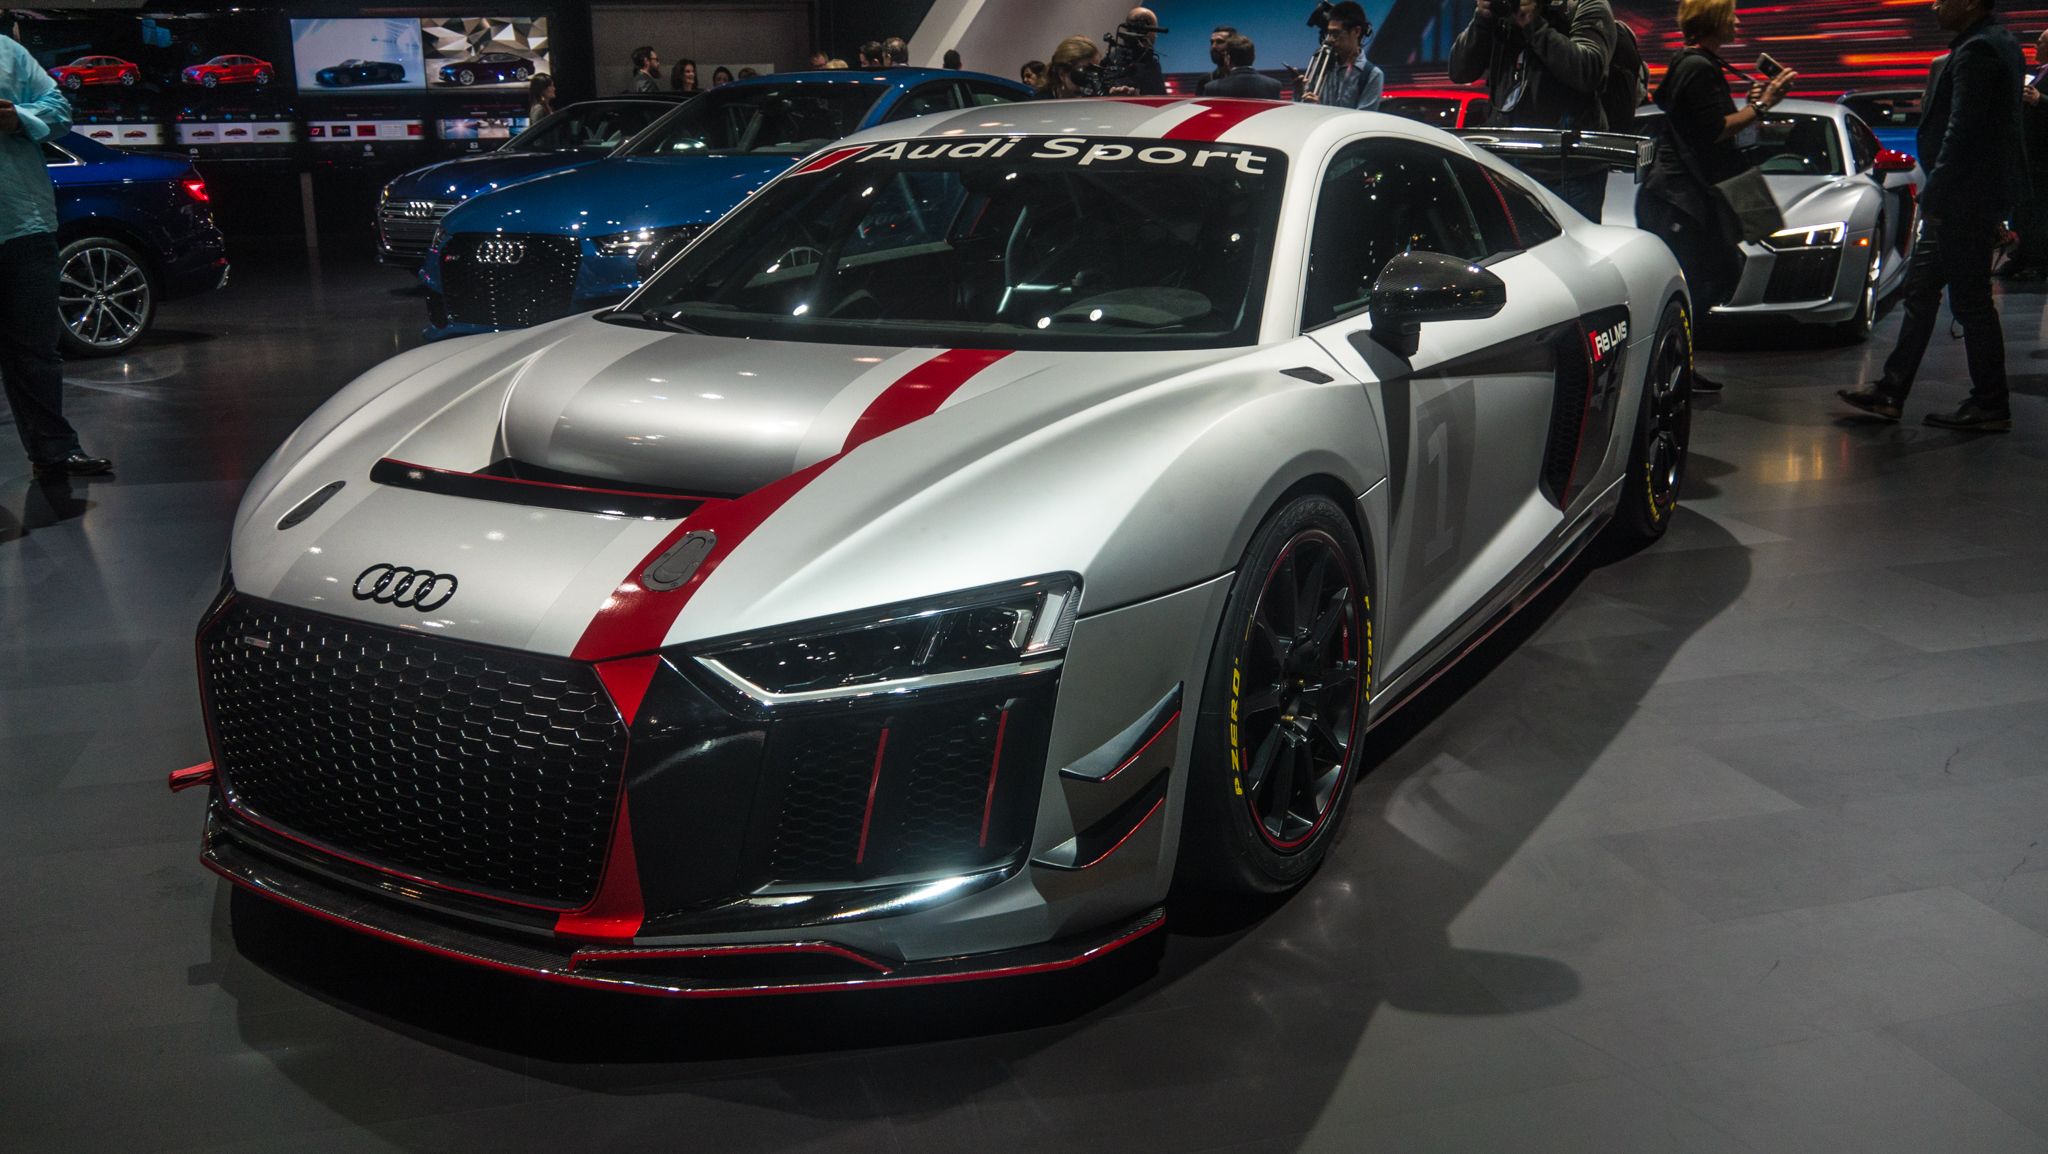 audi sport s new gt4 race car was star of its ny international auto show social marketing. Black Bedroom Furniture Sets. Home Design Ideas